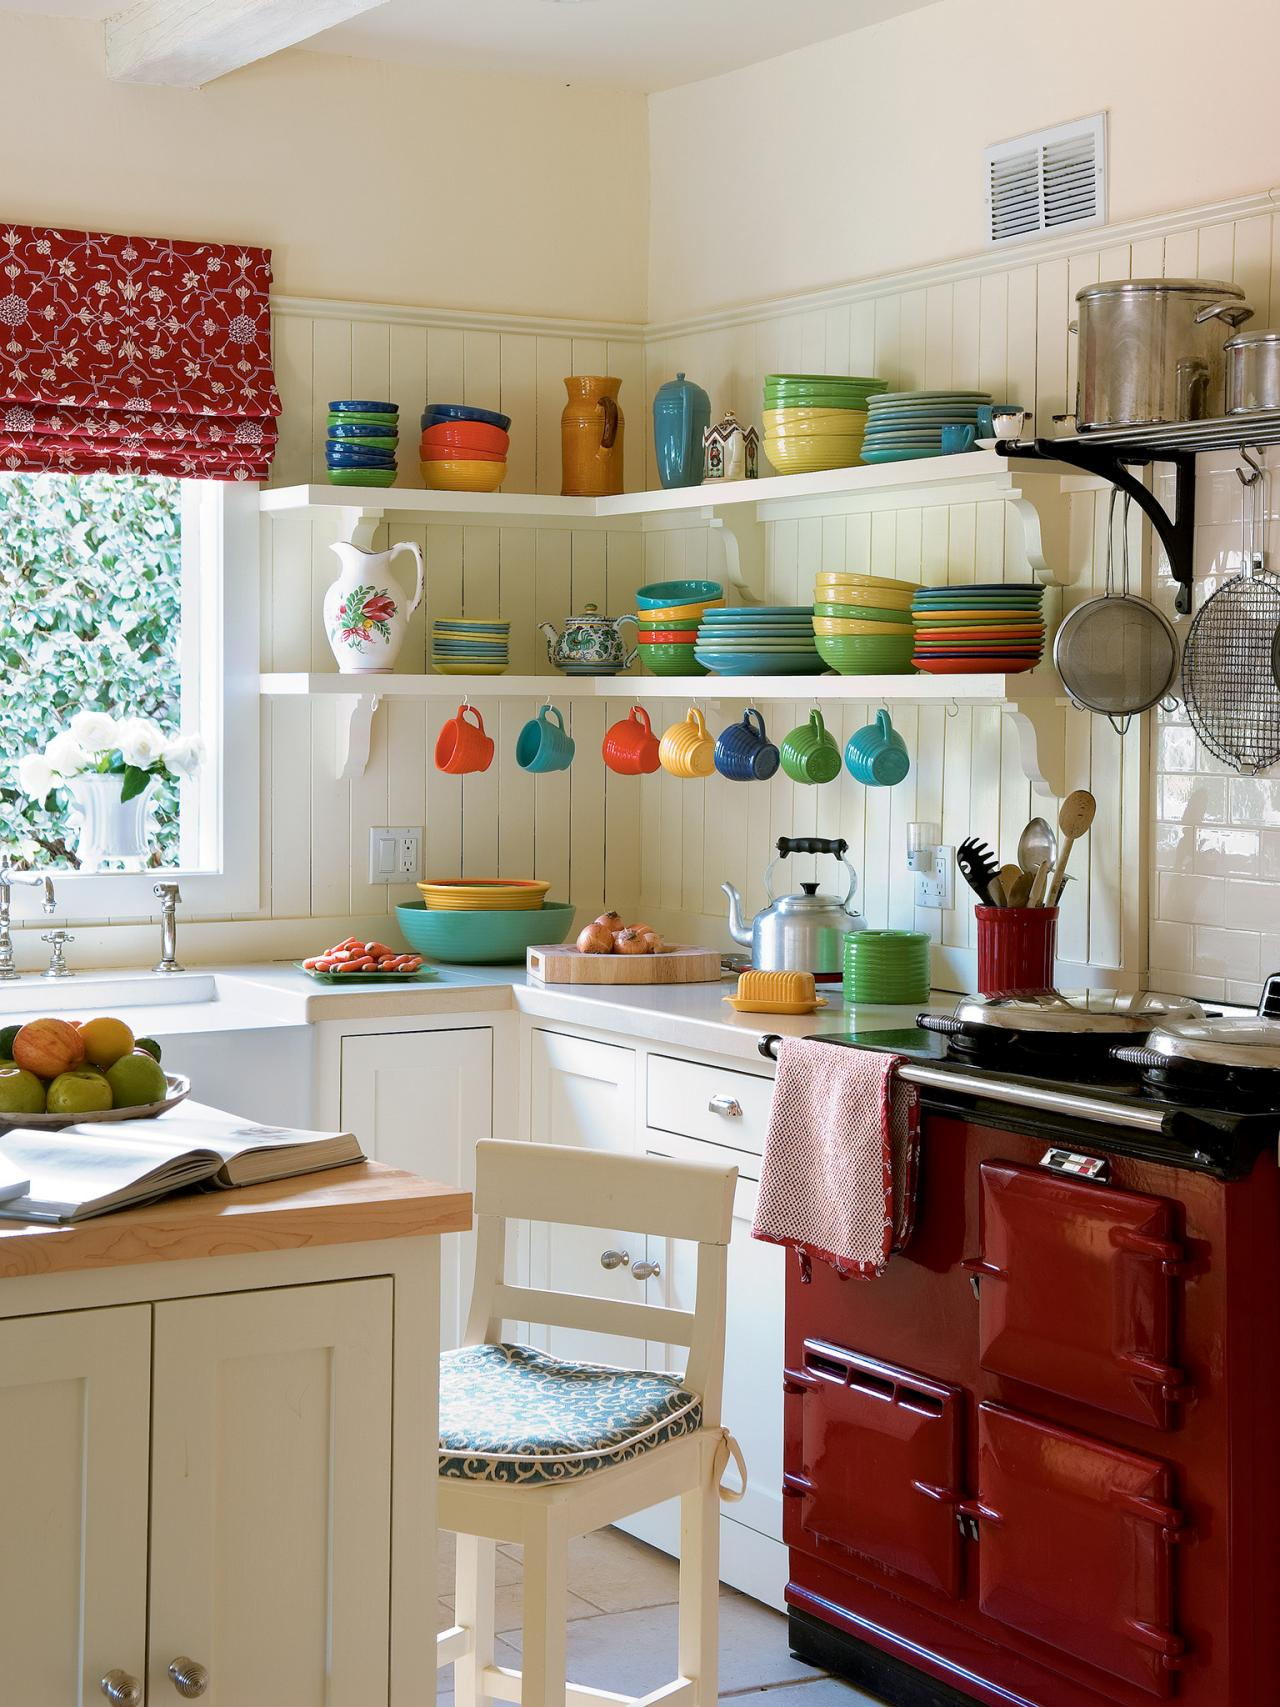 Classic, Country and Cozy Kitchen